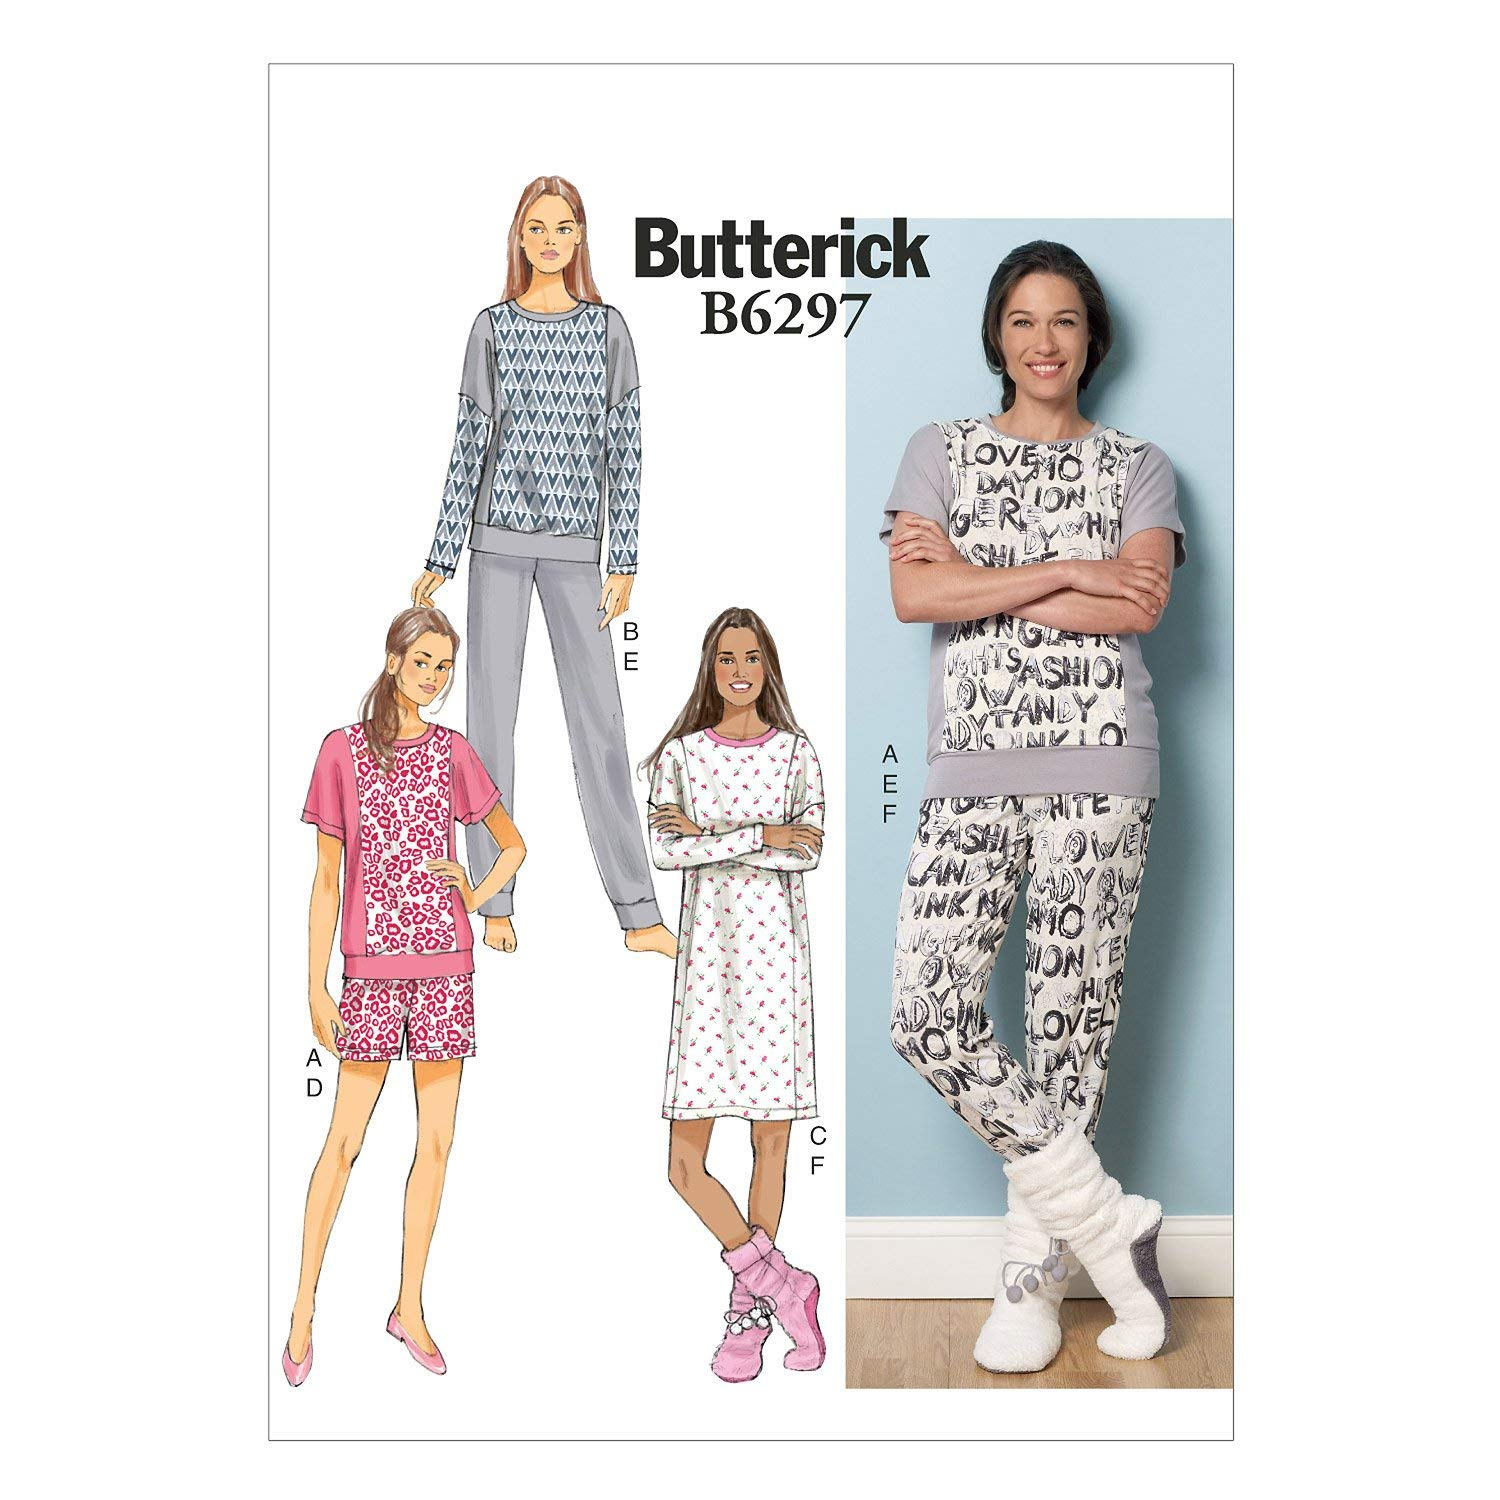 BUTTERICK PATTERNS B6297 Misses' Top, Dress, Shorts, Pants & Lounge Socks, Y (X-Small-Small-Medium)